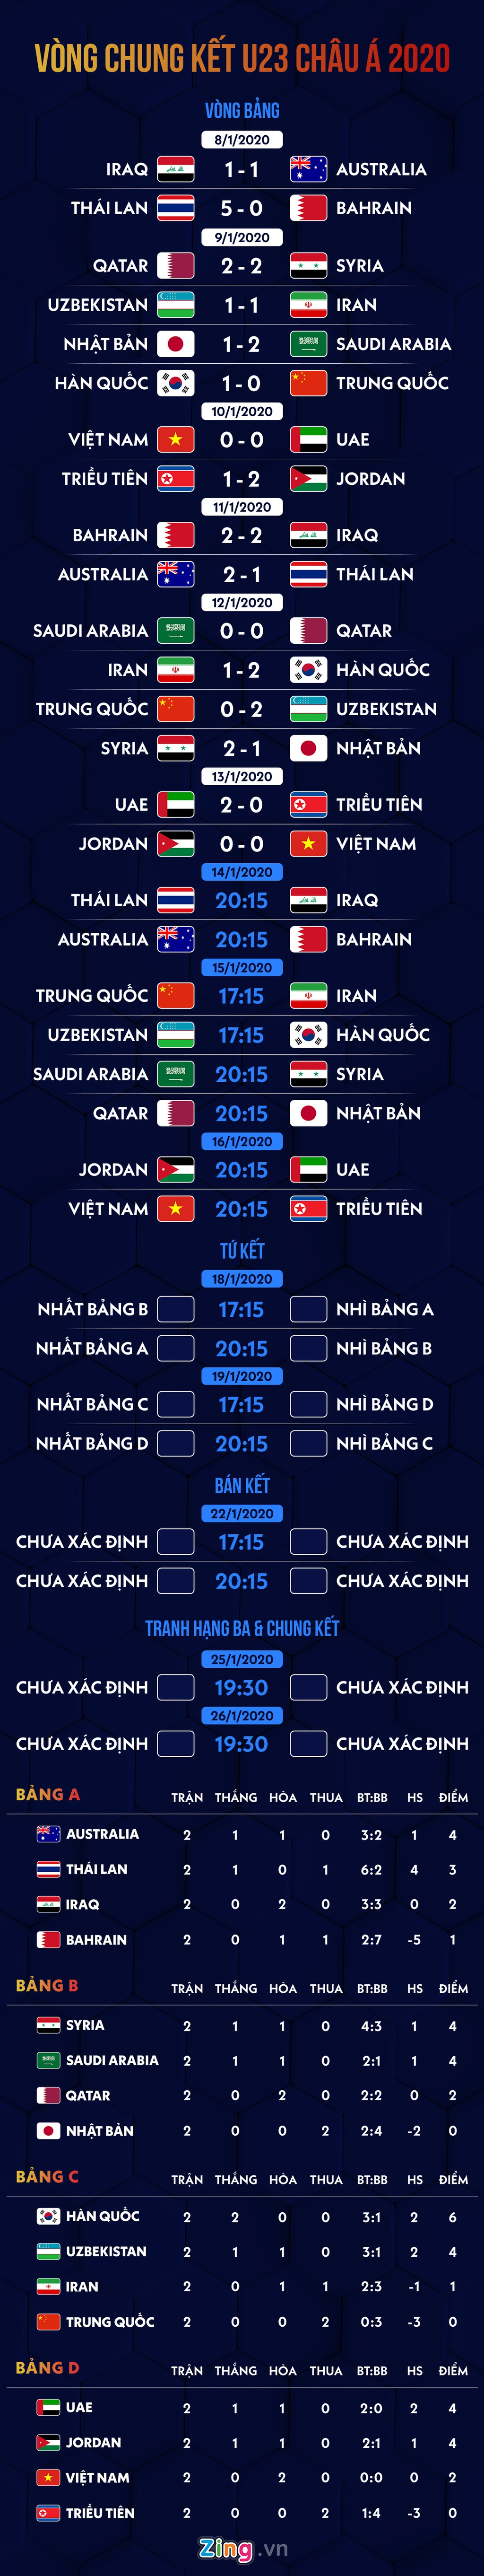 Lich thi dau U23 chau A 2020: Thai Lan gap Iraq hinh anh 1 01_schedule_afc_u23_2020_update_13th_jan.jpg